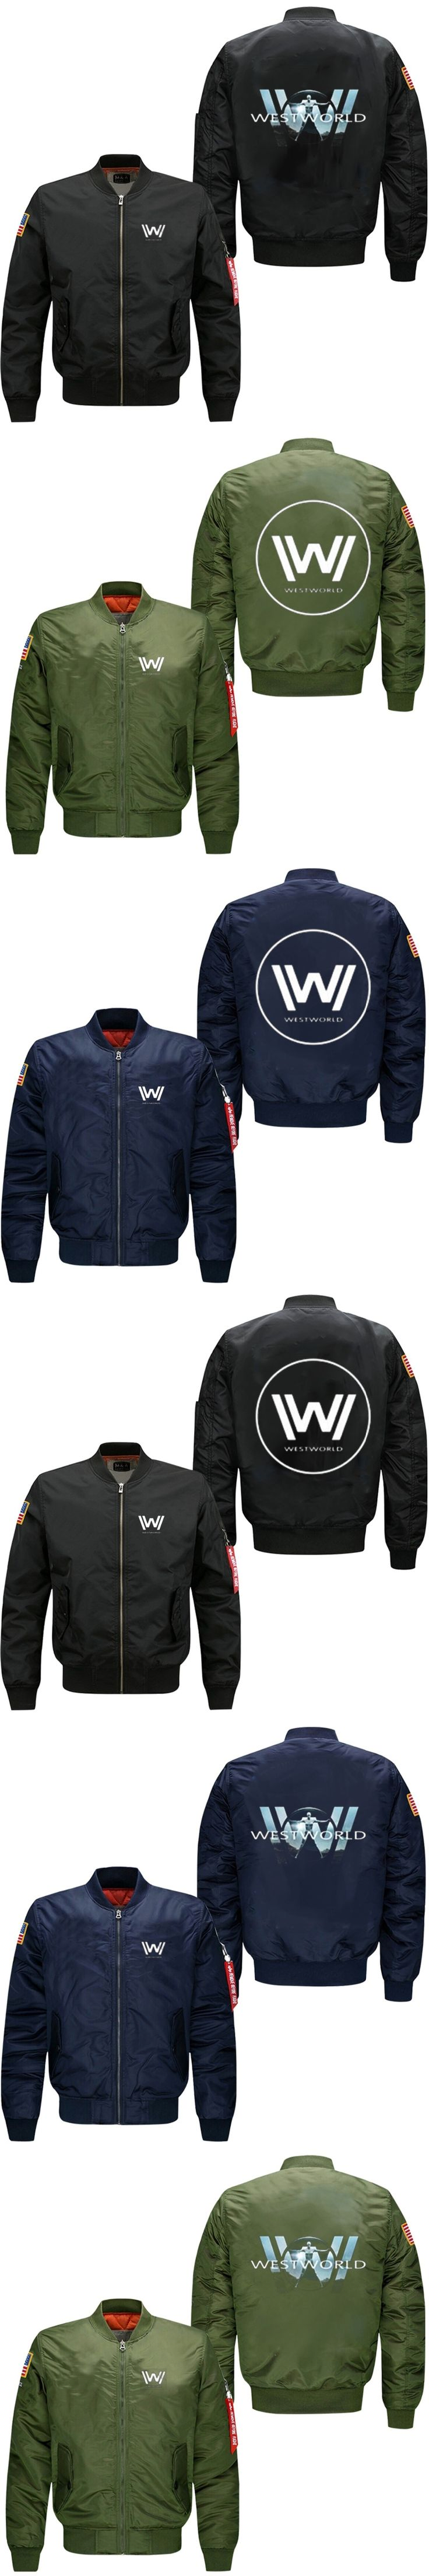 2017 Spring Men Bomber flight Jacket coat  TV Series Westworld  men's lensuire baseball uniform USA size free shipping